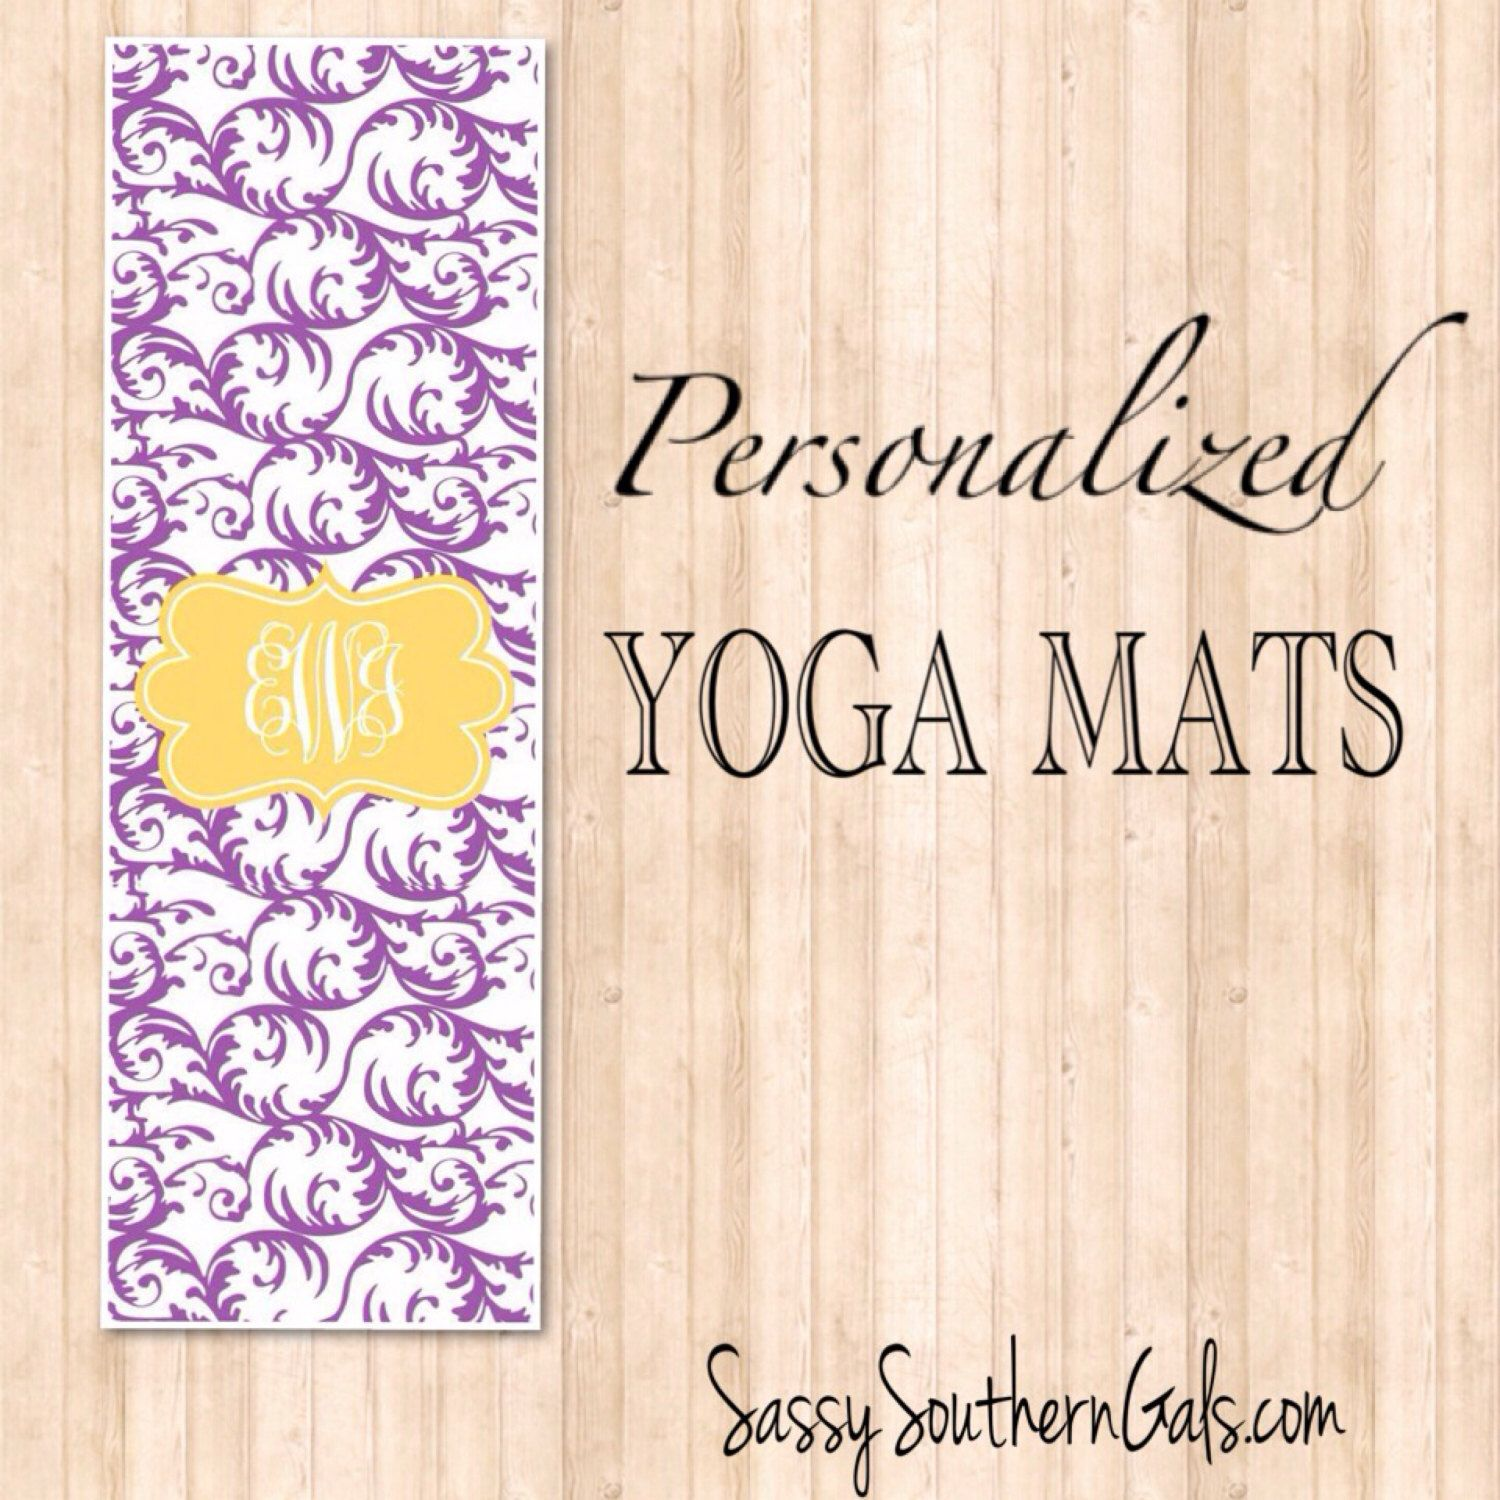 thick extra yoga cling shipping cell personalized free listing phone imbq monogrammed for mat your il card mats wallet